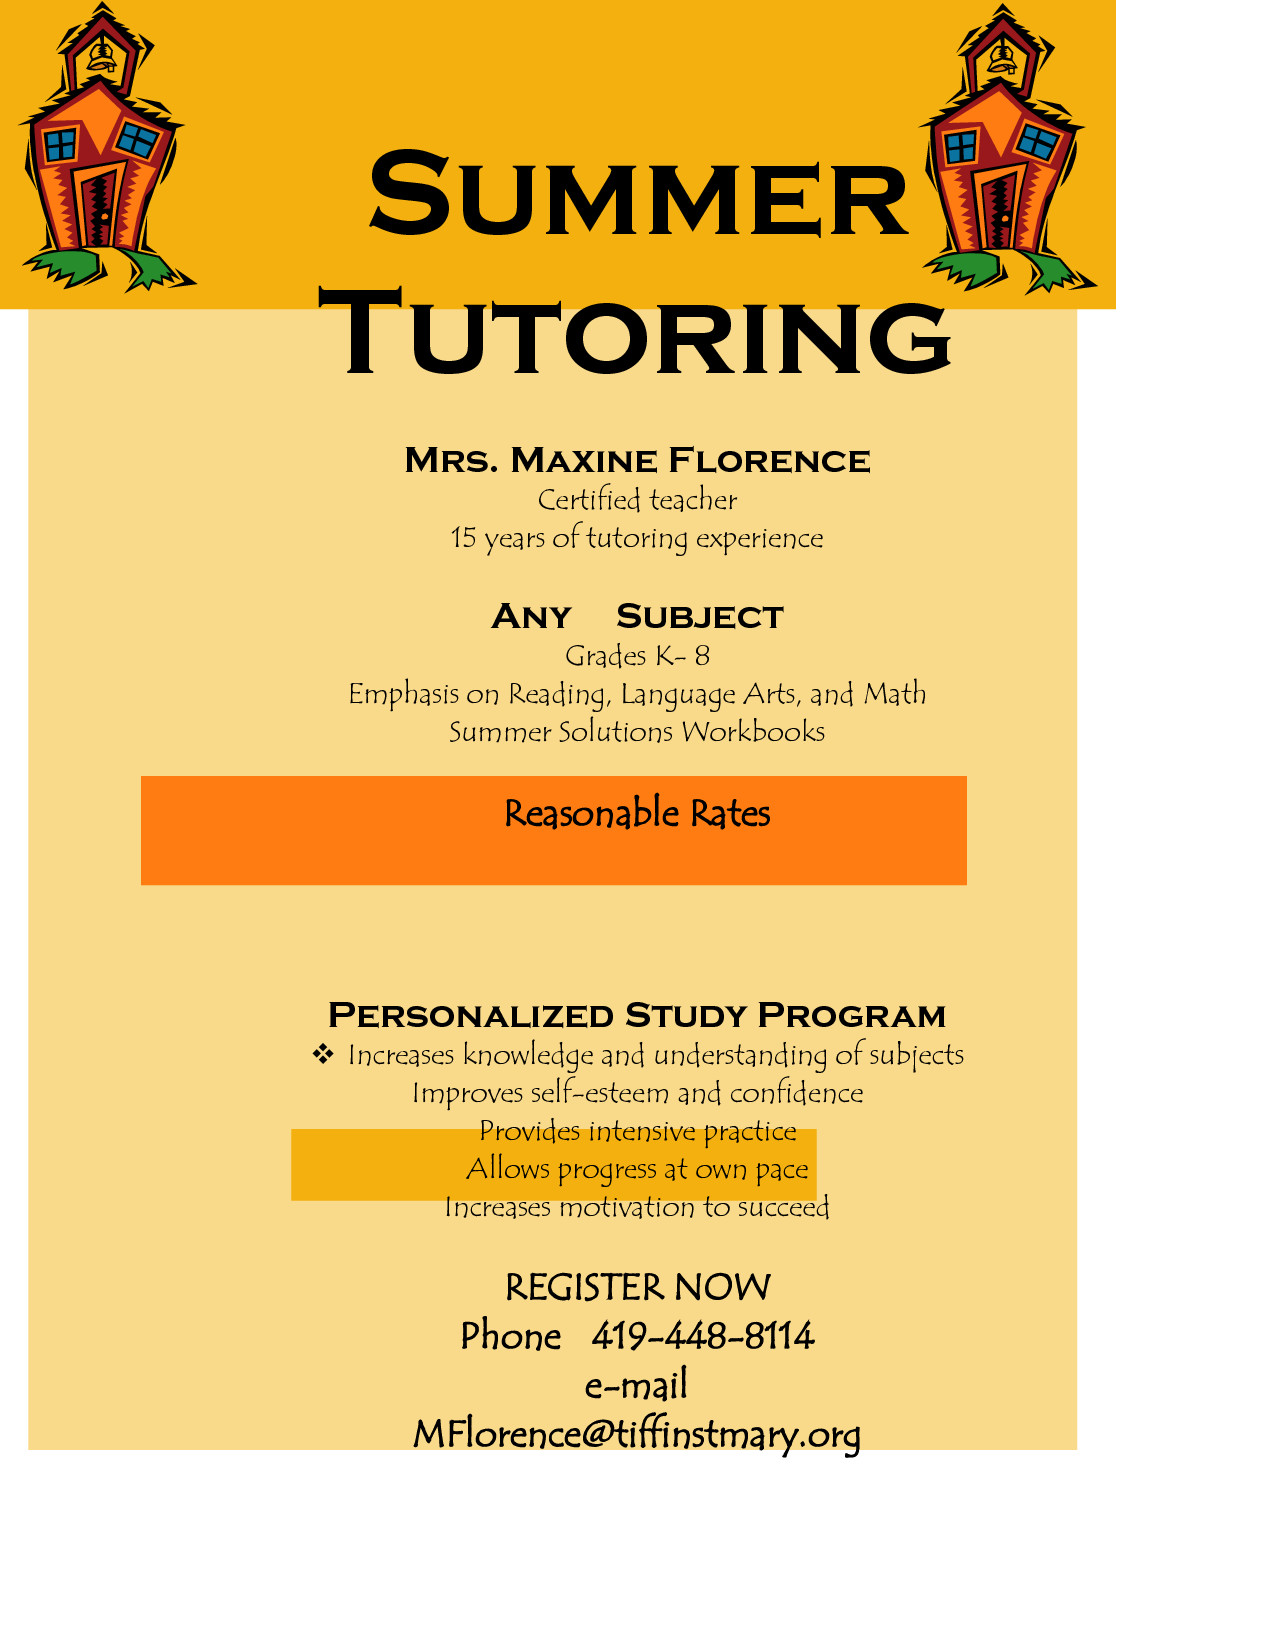 Tutoring Flyer Templates Free Flyer for Tutoring Services